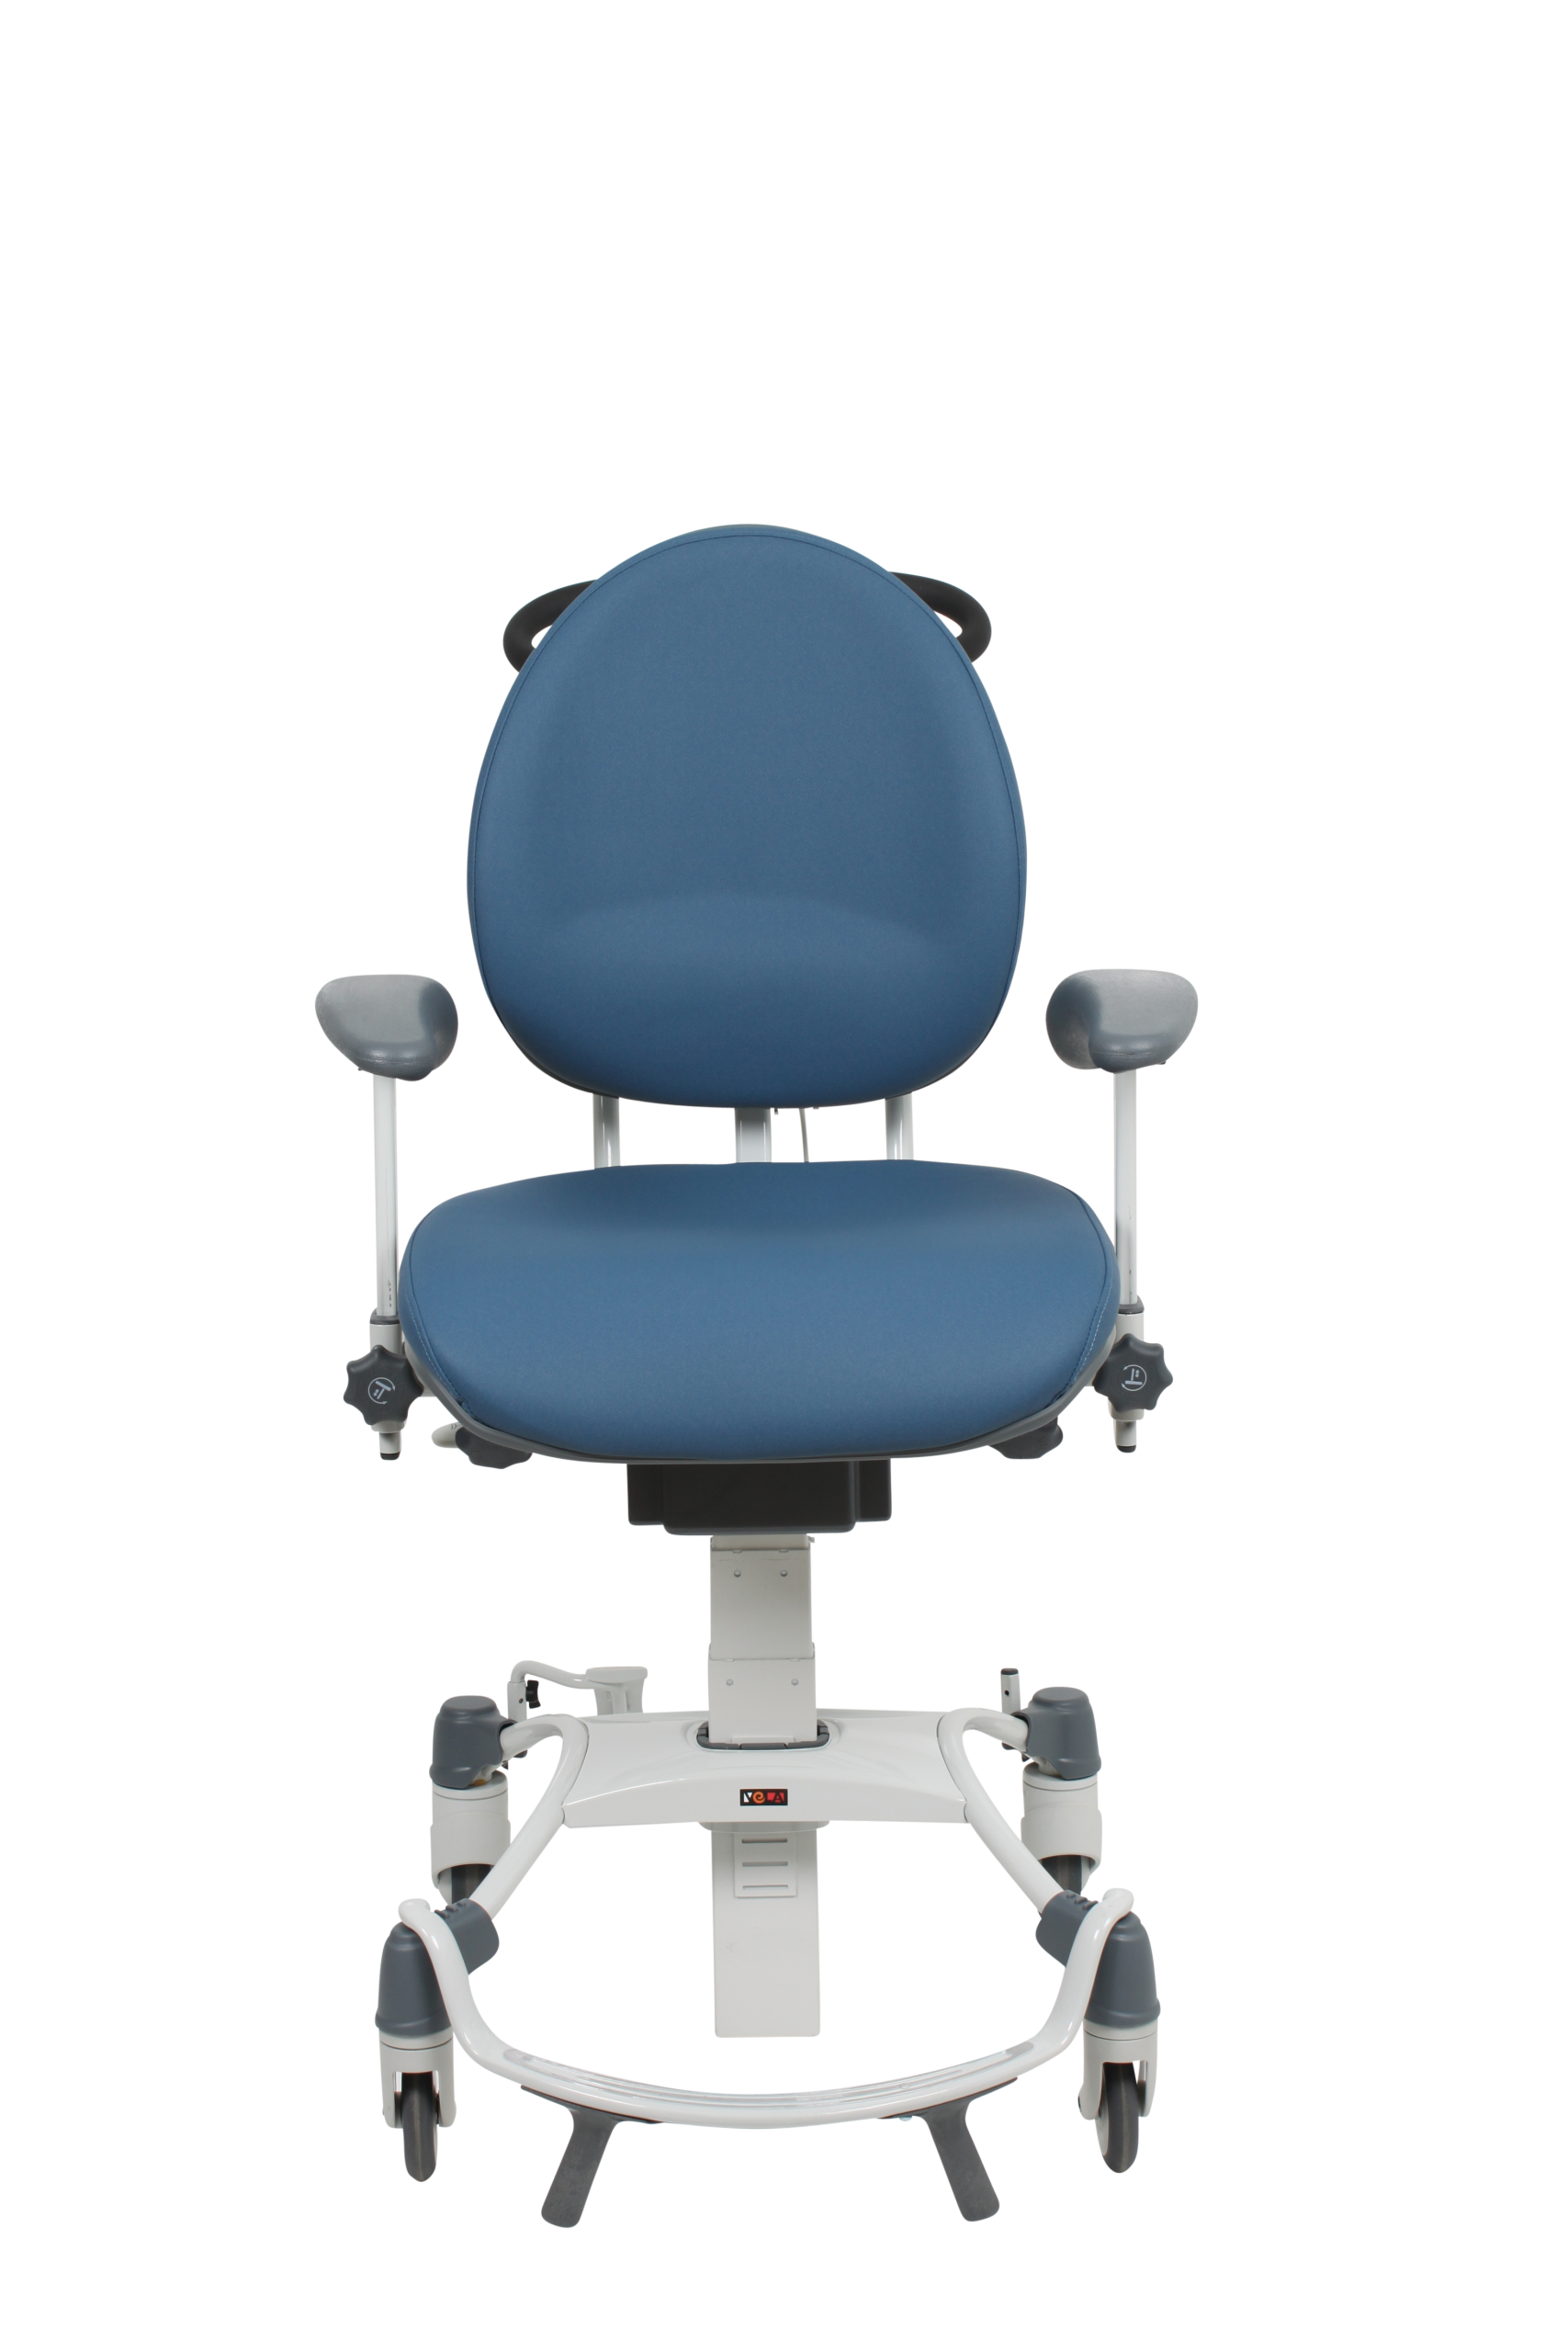 https://www.lameris-group.nl/wp-content/uploads/2020/03/VELA-Move-Ophtalmology-chair-front-scaled.png